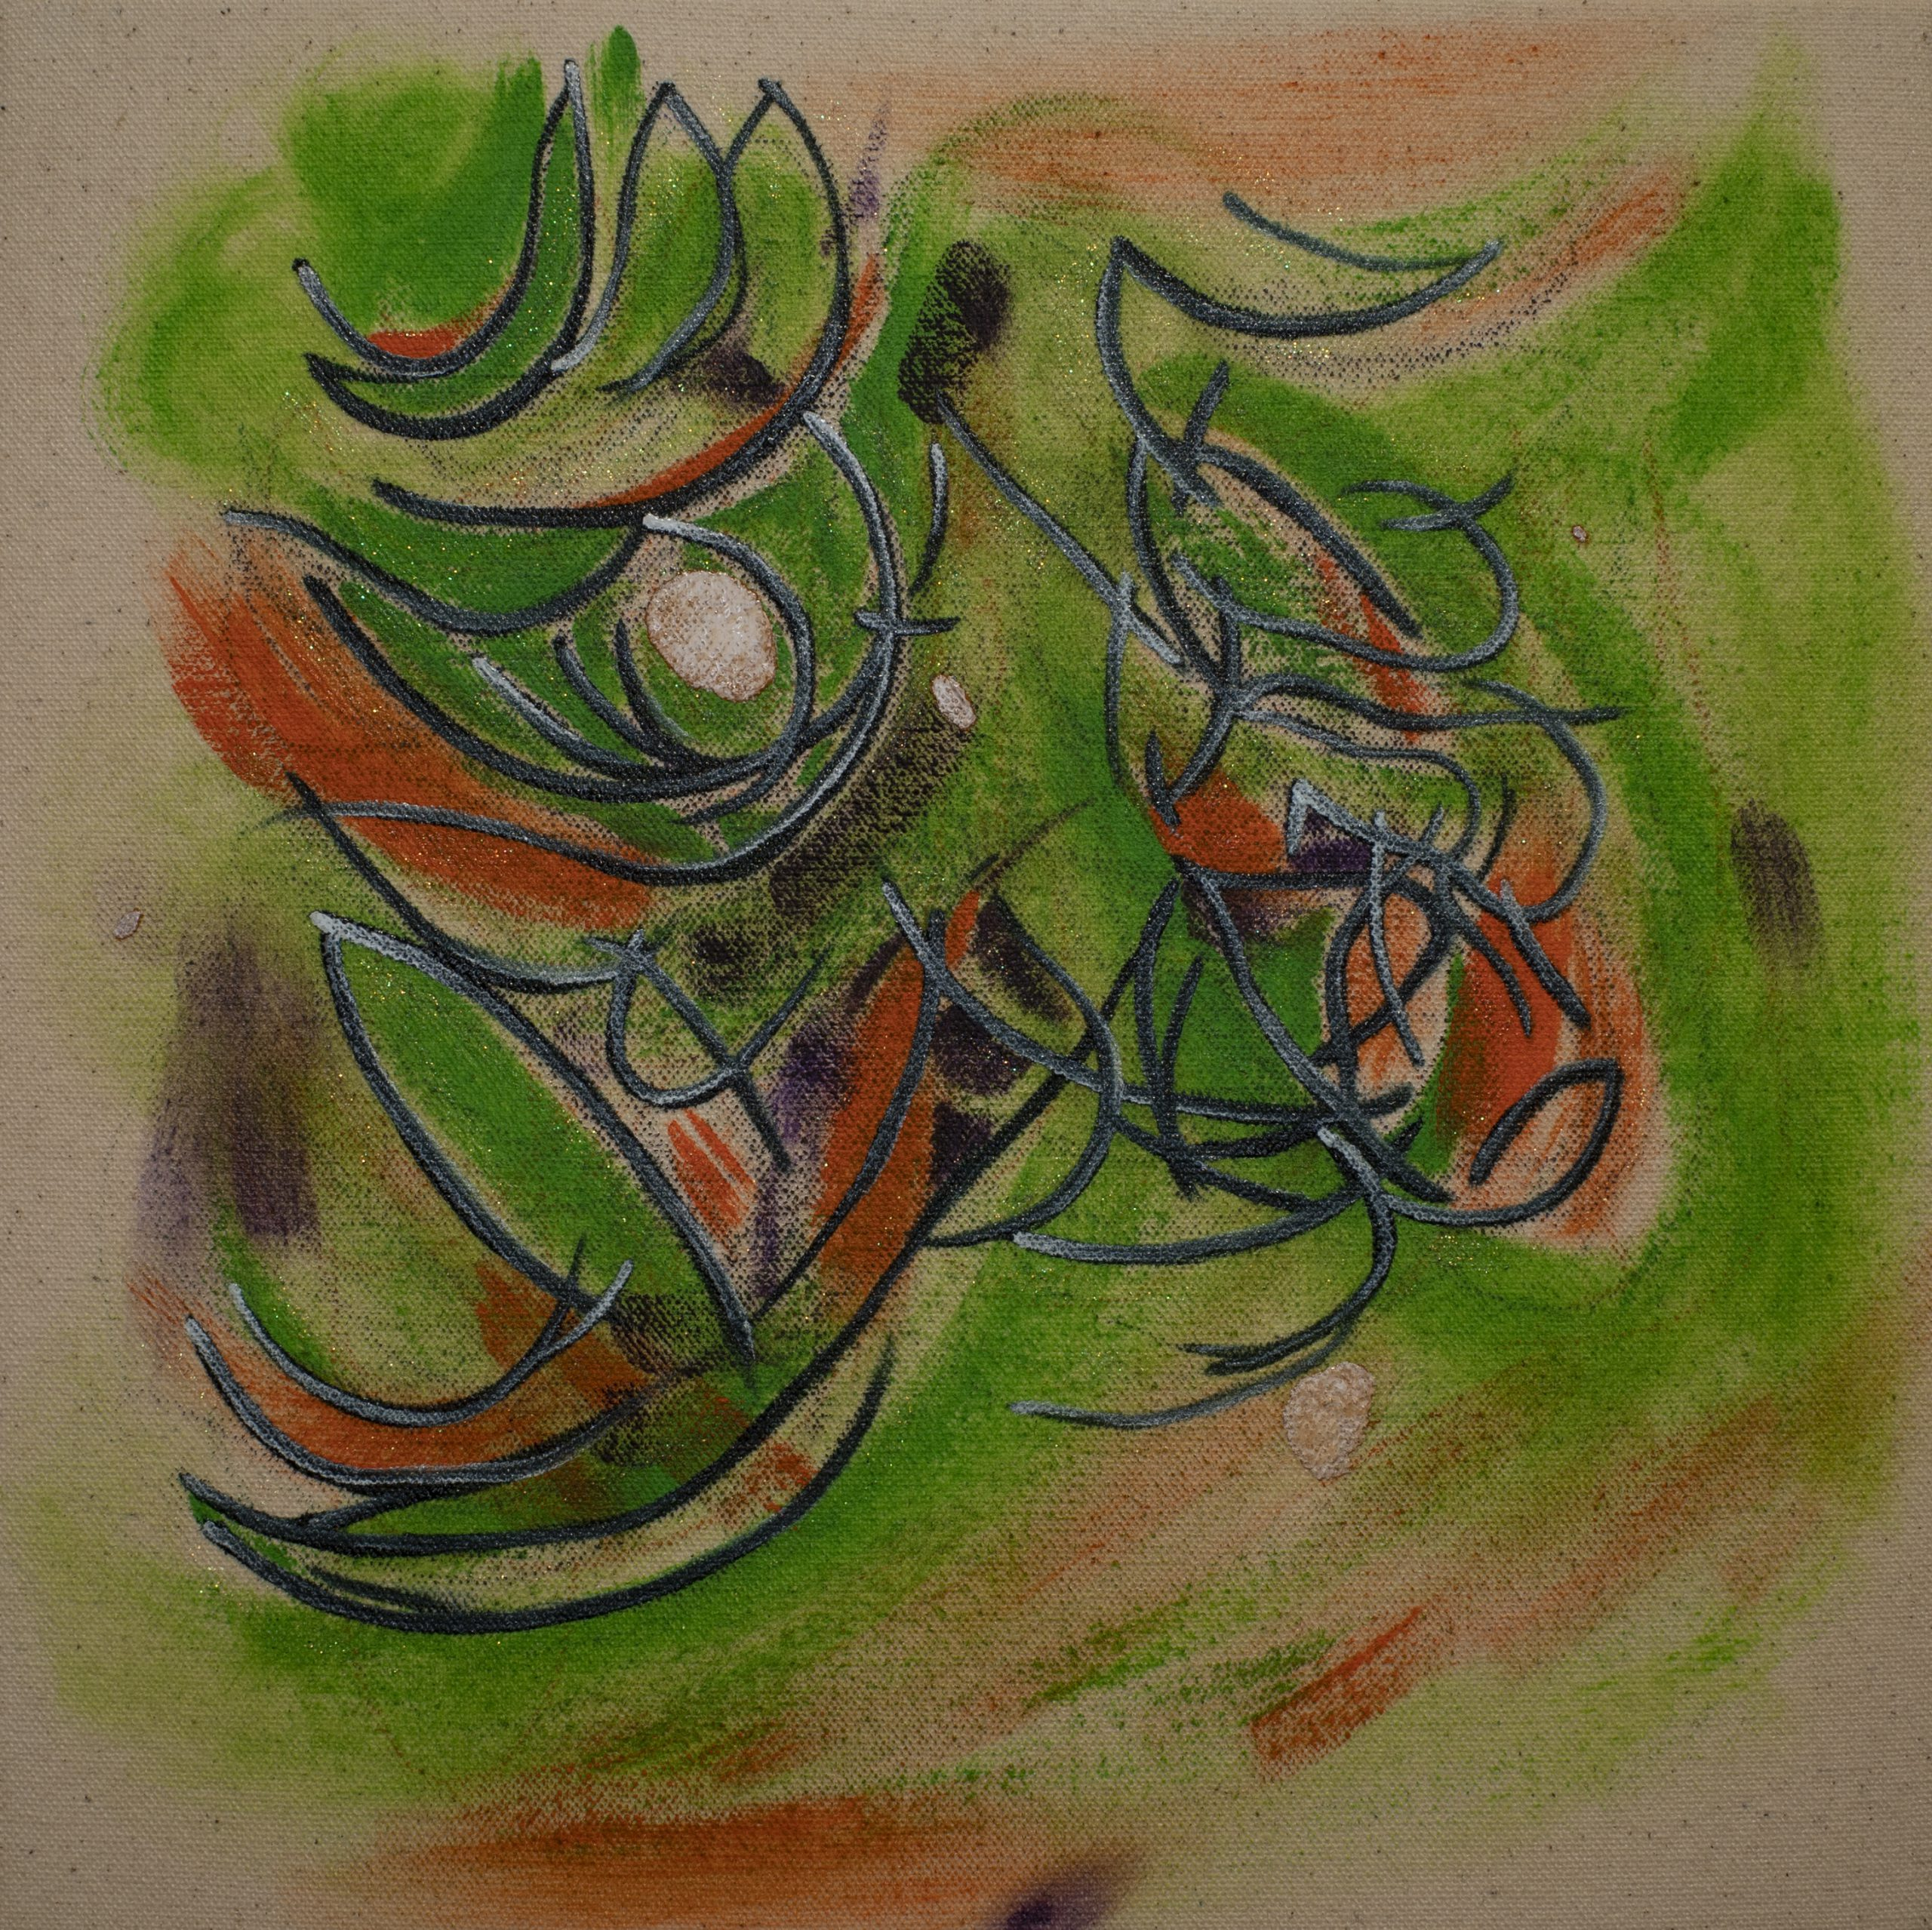 音形2021.01.06 The sound's form 2021.01.06 [AQYLA on cotton cloth, Medium, Acrylic, Oil, Dermatograph, Pencil, 27.3×27.3cm, 2021]